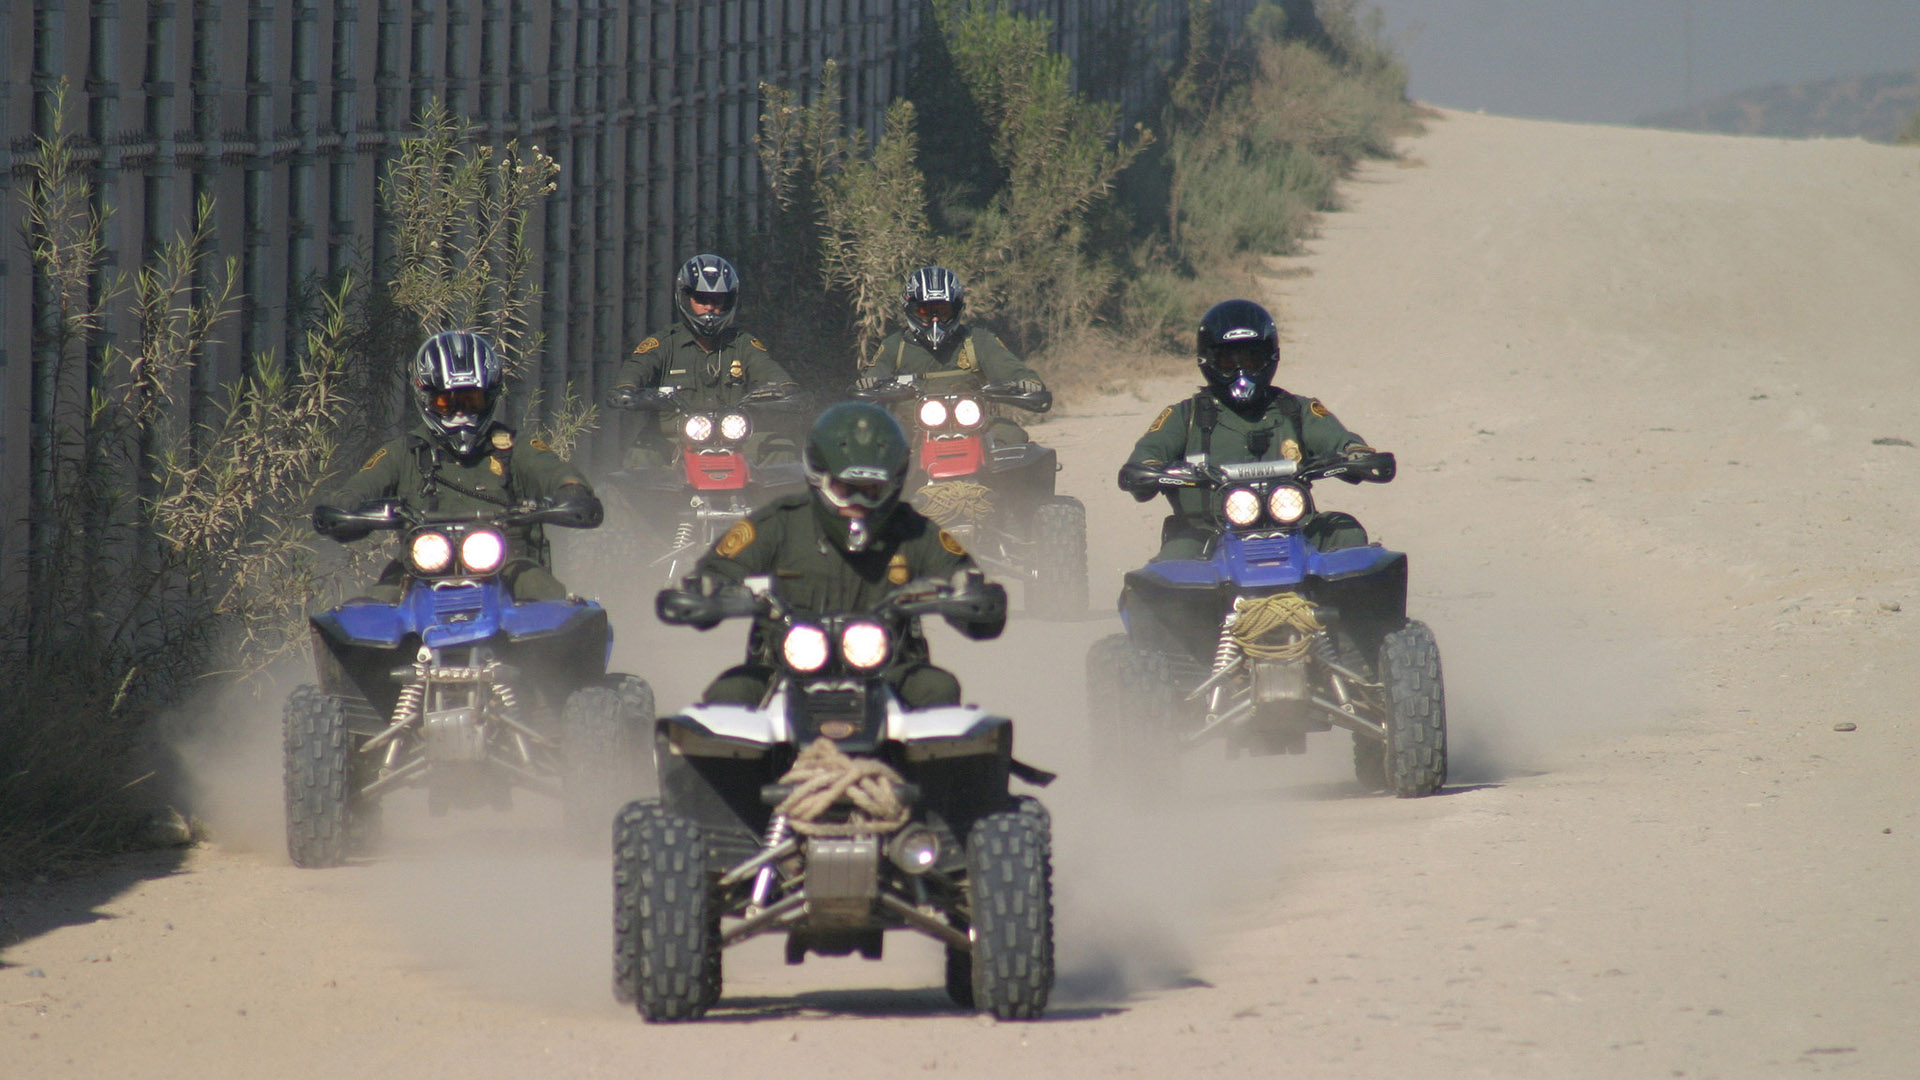 Border Patrol agents conducting patrols on ATVs in 2005.